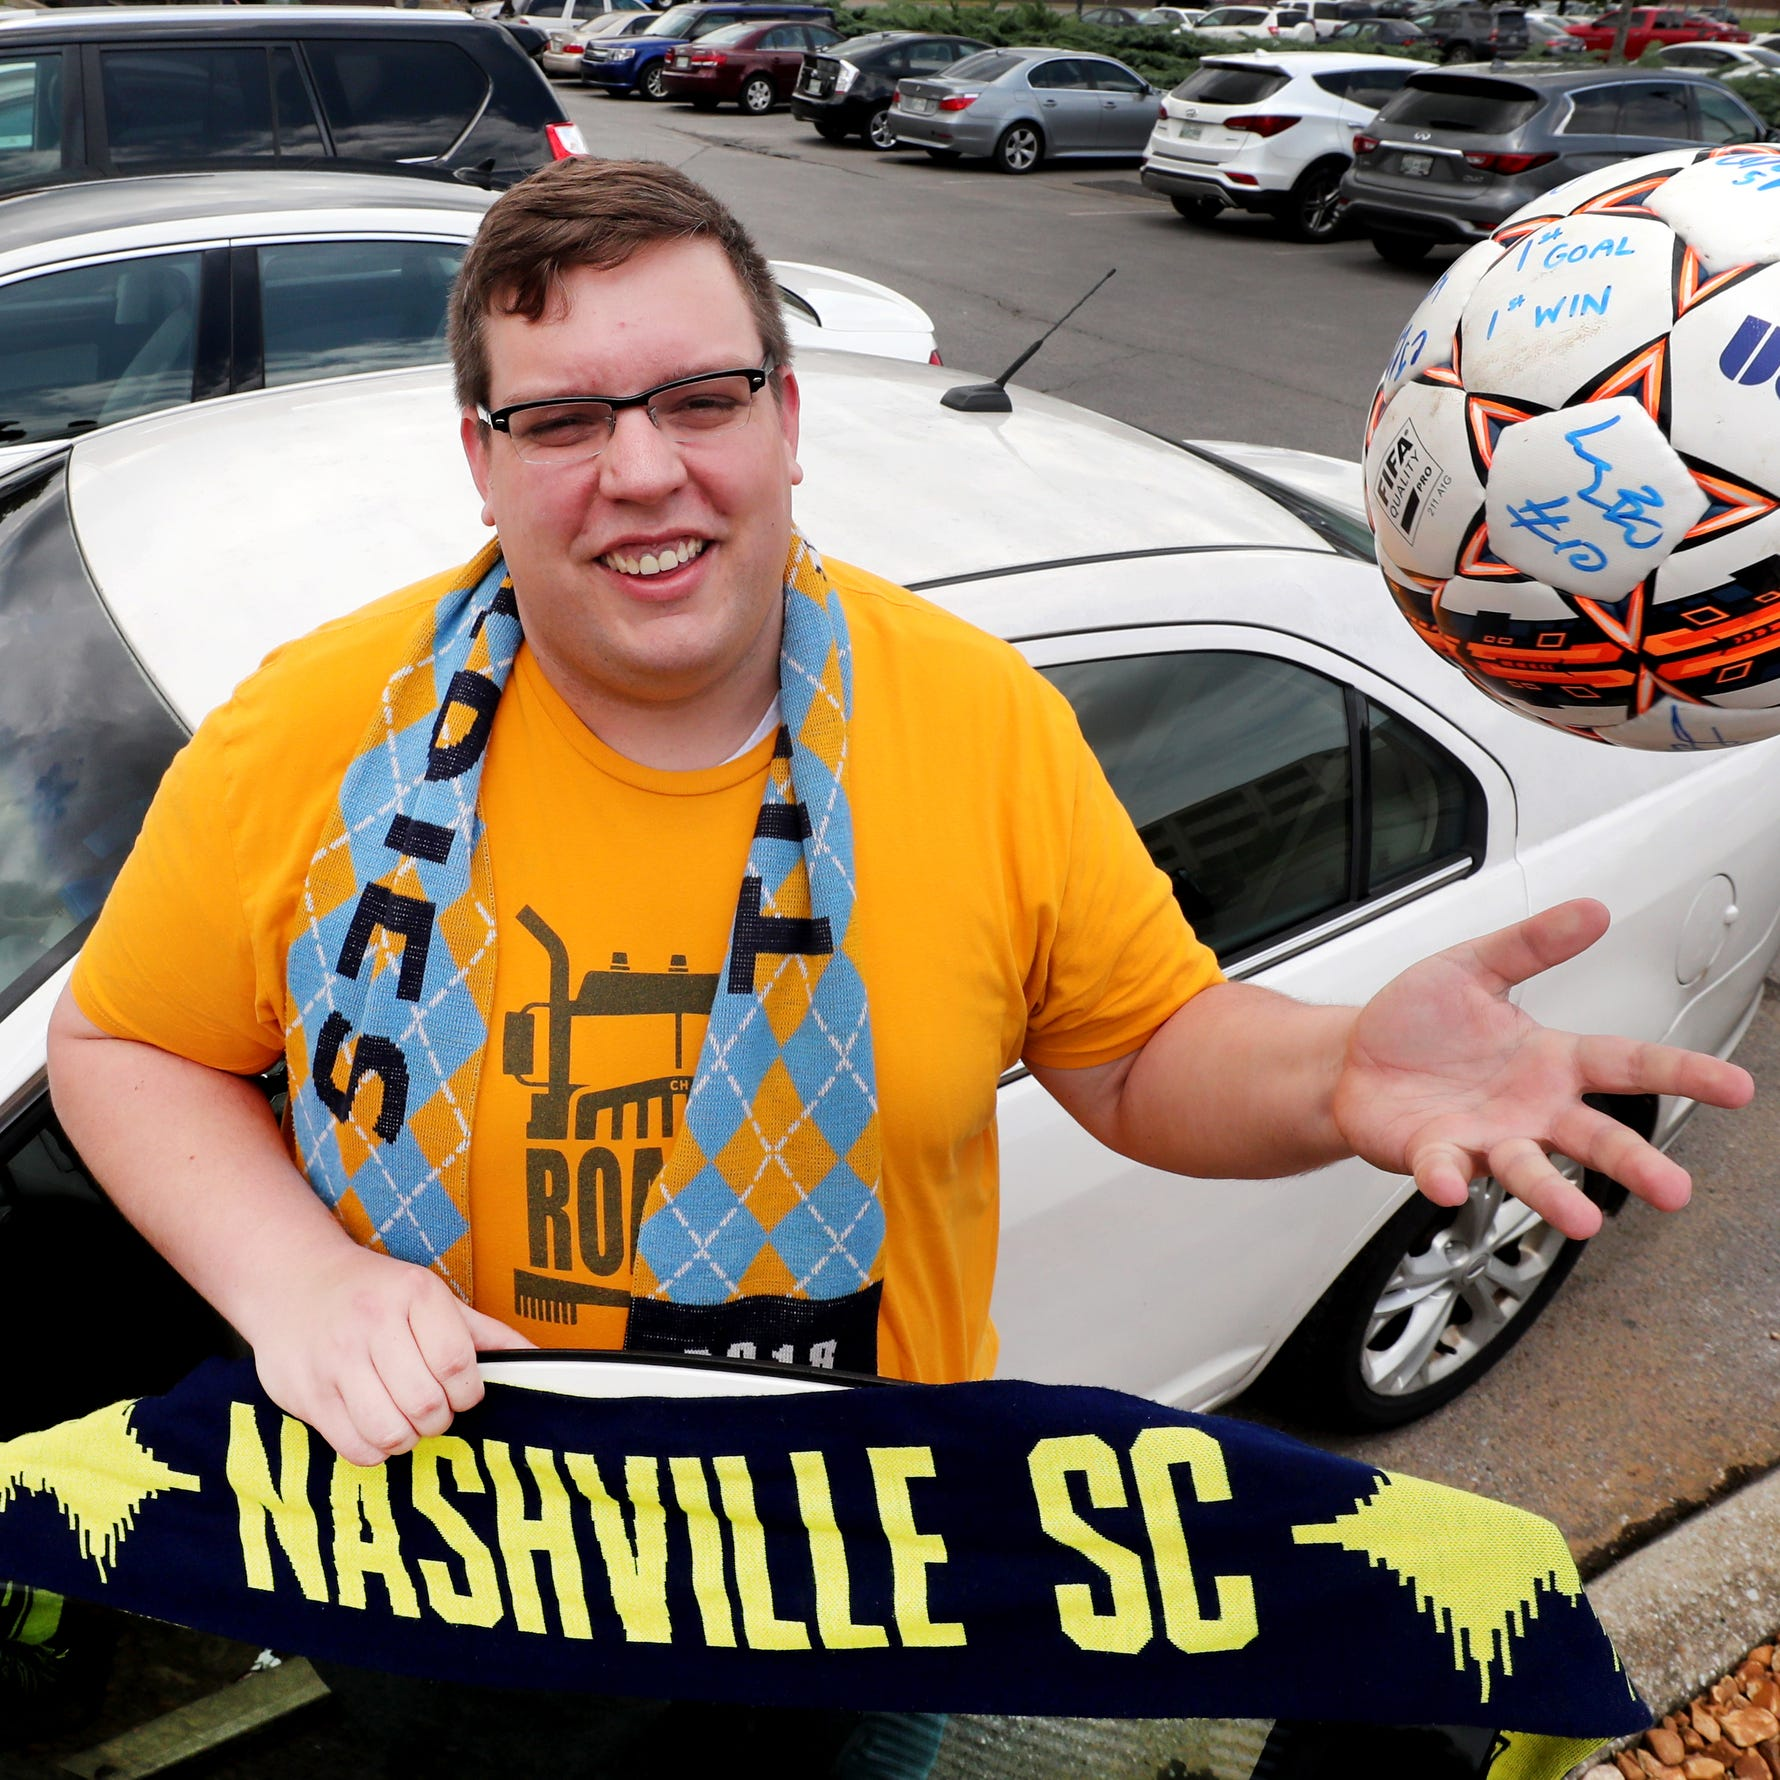 Meet the Nashville SC fan who will travel 10,000 miles this season